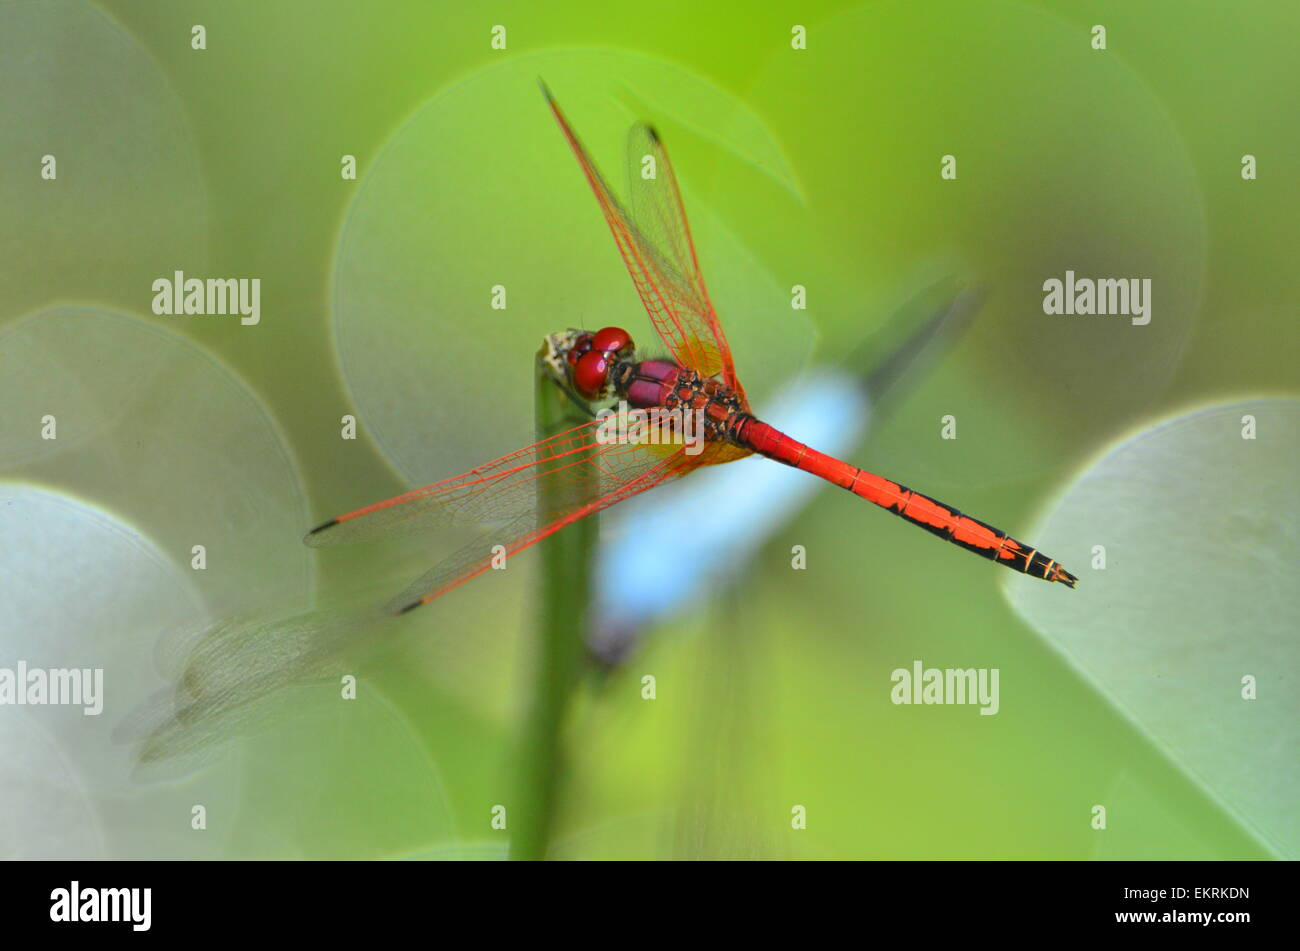 Red dragonfly sitting on reed in world famous Kruger National Park, Mpumalanga, South Africa. - Stock Image